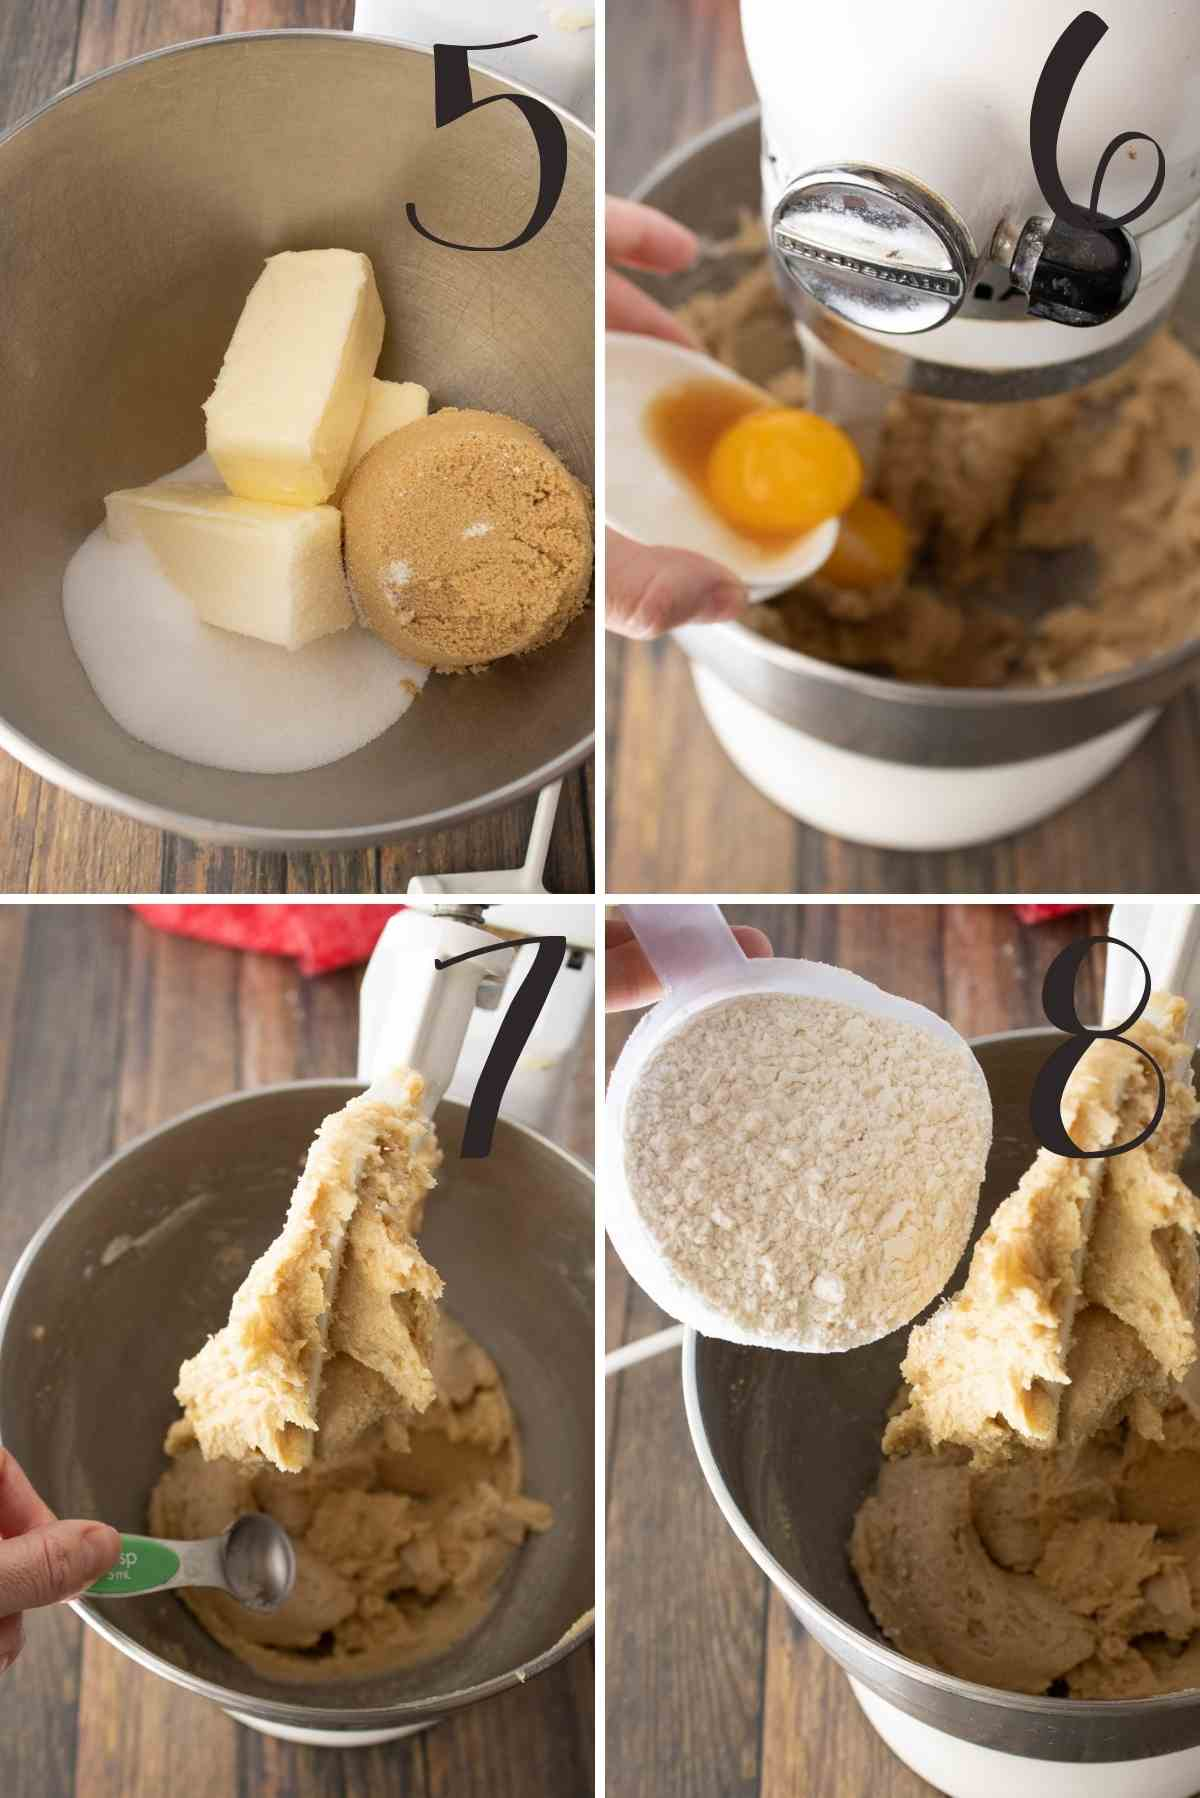 Steps for preparing the caramel cookie dough.